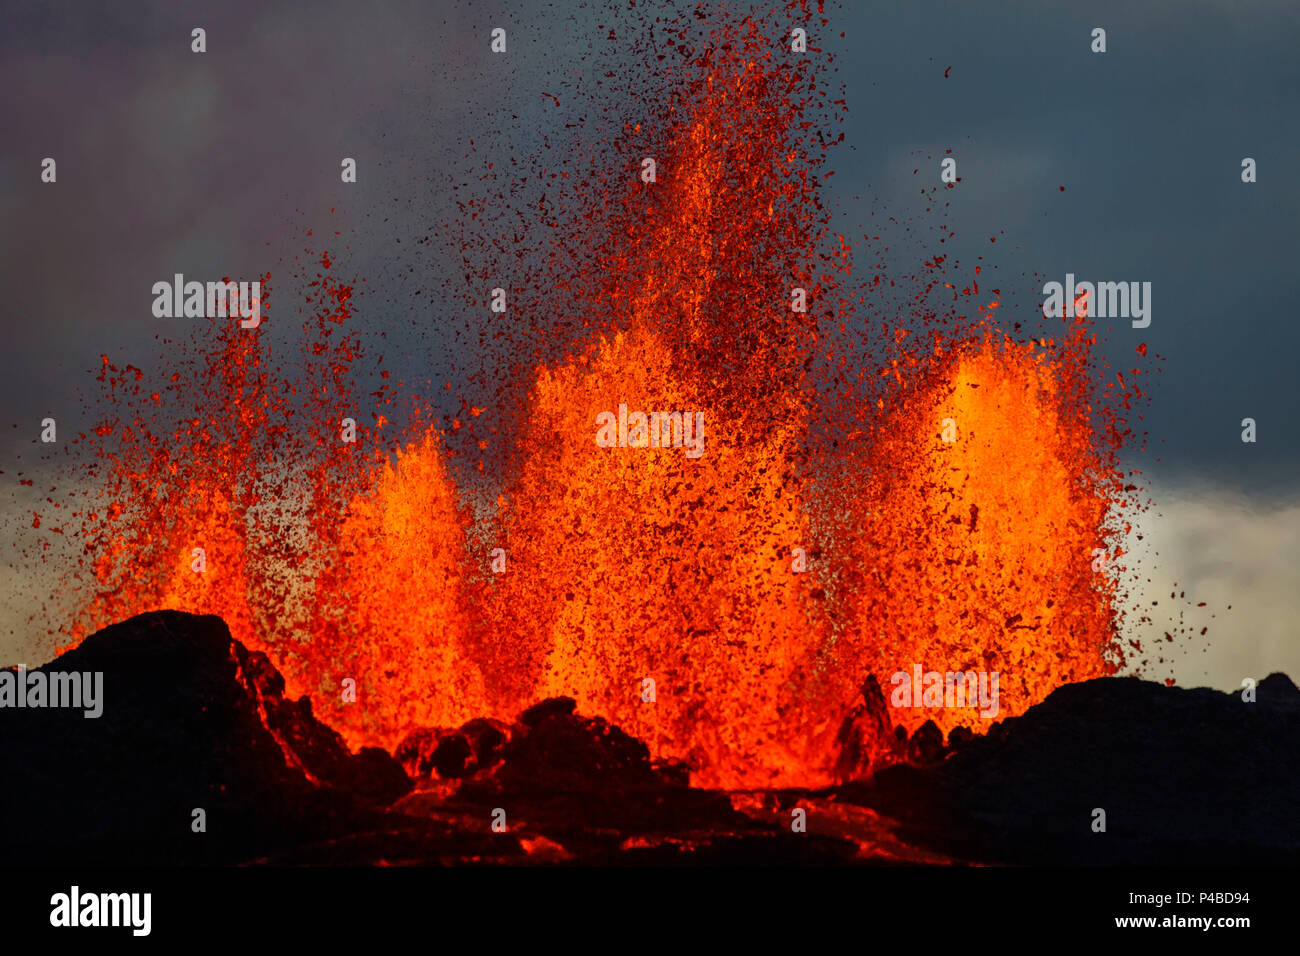 Lava fountains at the Holuhraun Fissure eruption near Bardarbunga Volcano, Iceland. August 29, 2014 a fissure eruption started in Holuhraun at the northern end of a magma intrusion, which had moved progressively north, from the Bardarbunga volcano. Bardarbunga is a stratovolcano located under Vatnajokull, Iceland's most extensive glacier. Picture Date-Sept. 2, 2014 - Stock Image